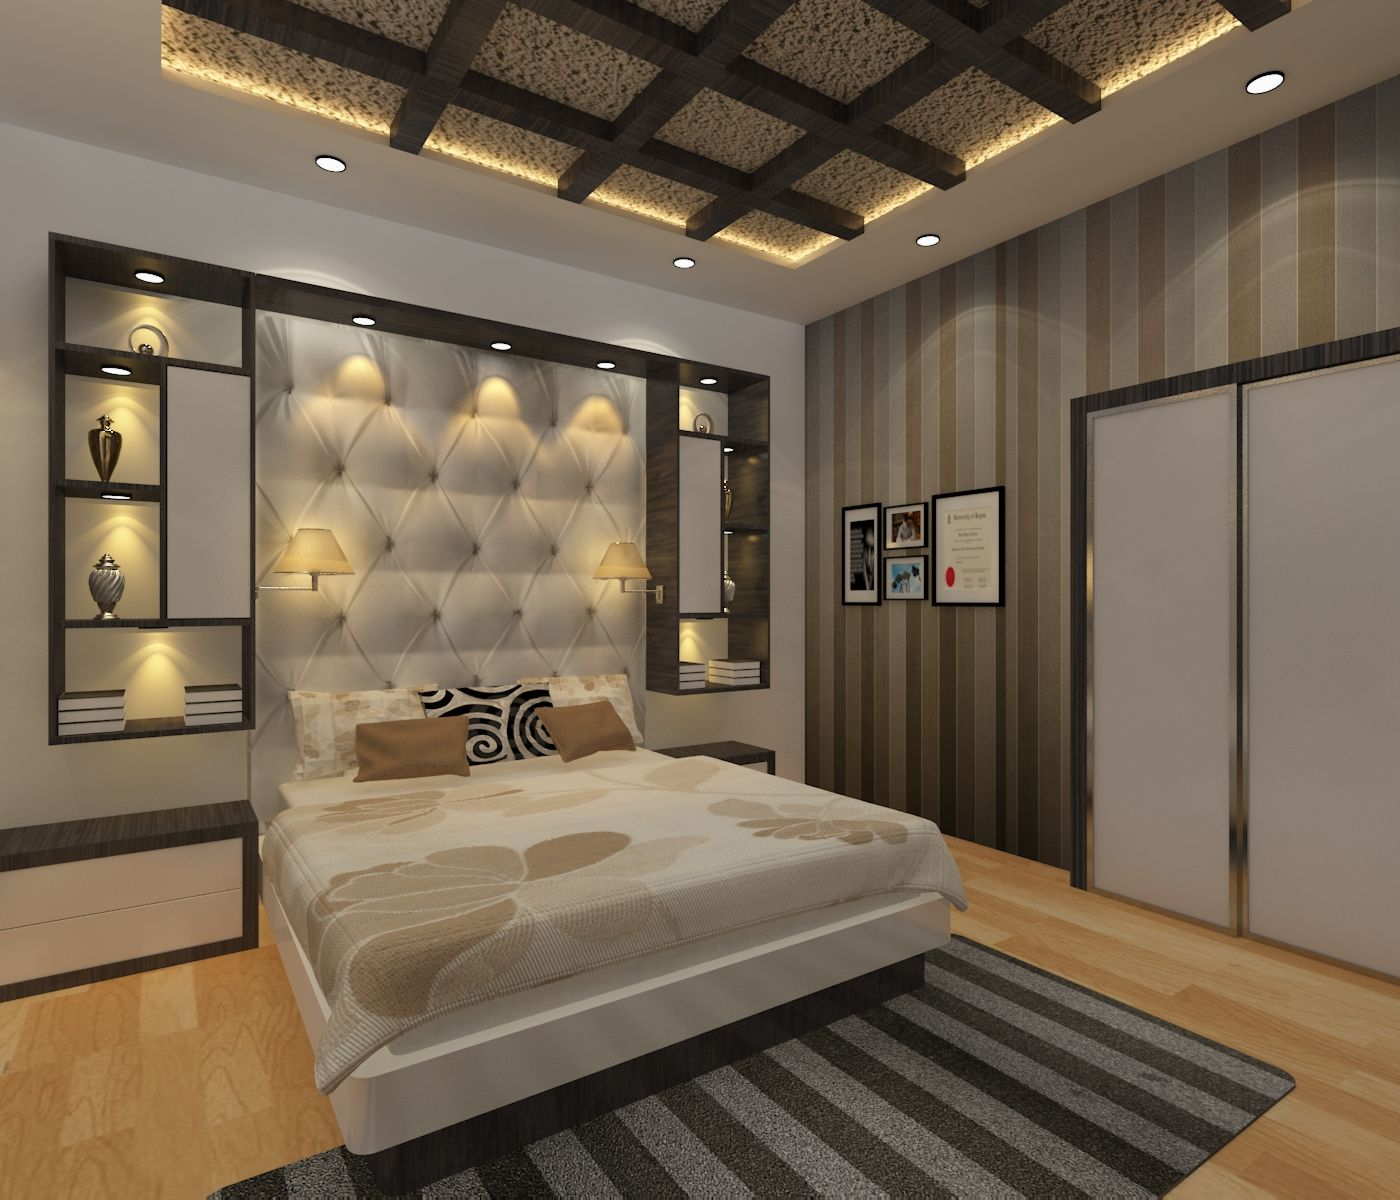 101 Sleek Modern Master Bedroom Design Ideas For 2018 Pictures Enchanting Bedroom Down Ceiling Designs 2018